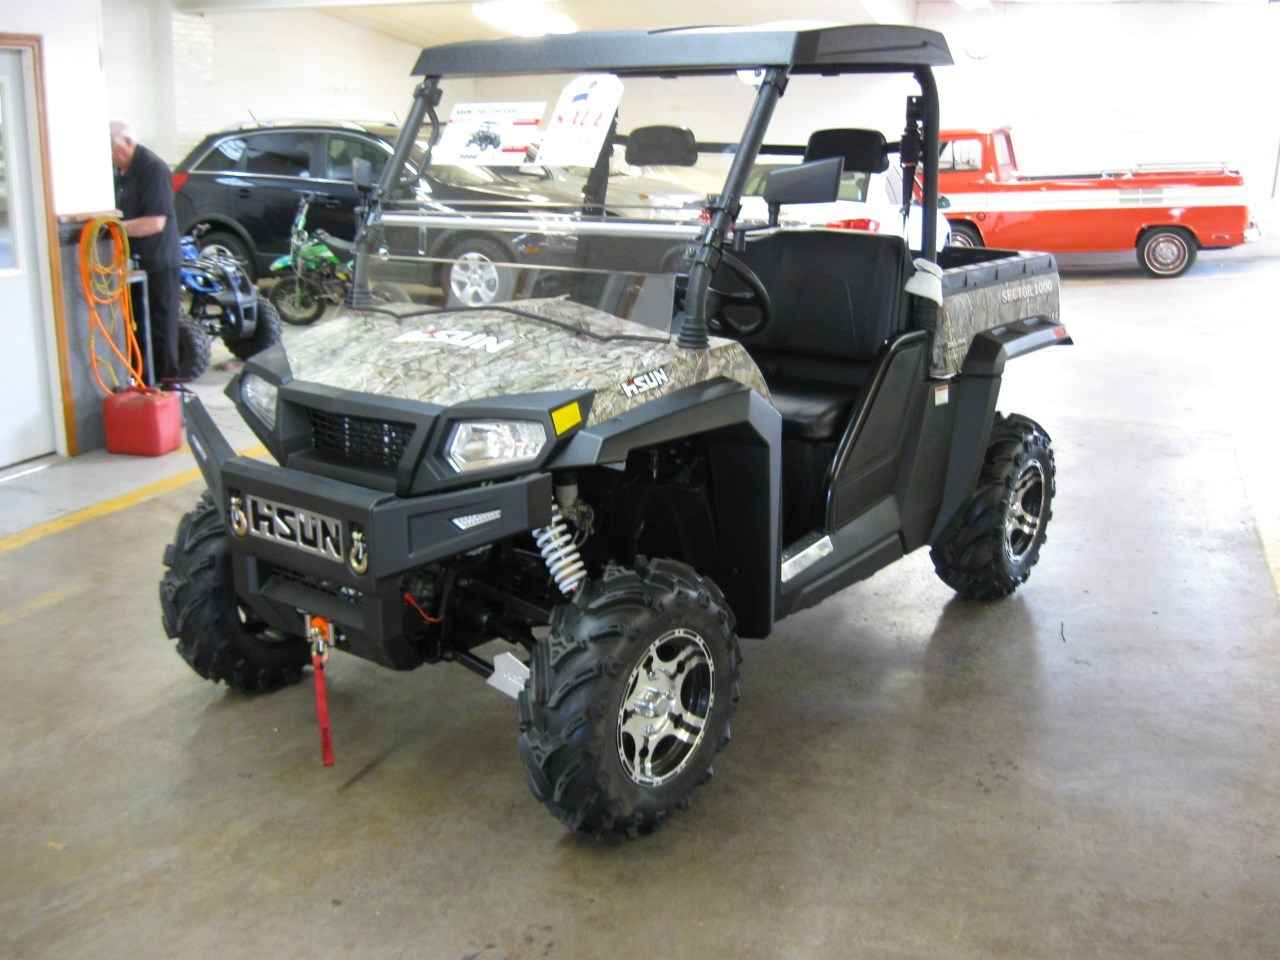 Used 2016 Hisun SECTOR 1000 ATVs For Sale in Pennsylvania ...